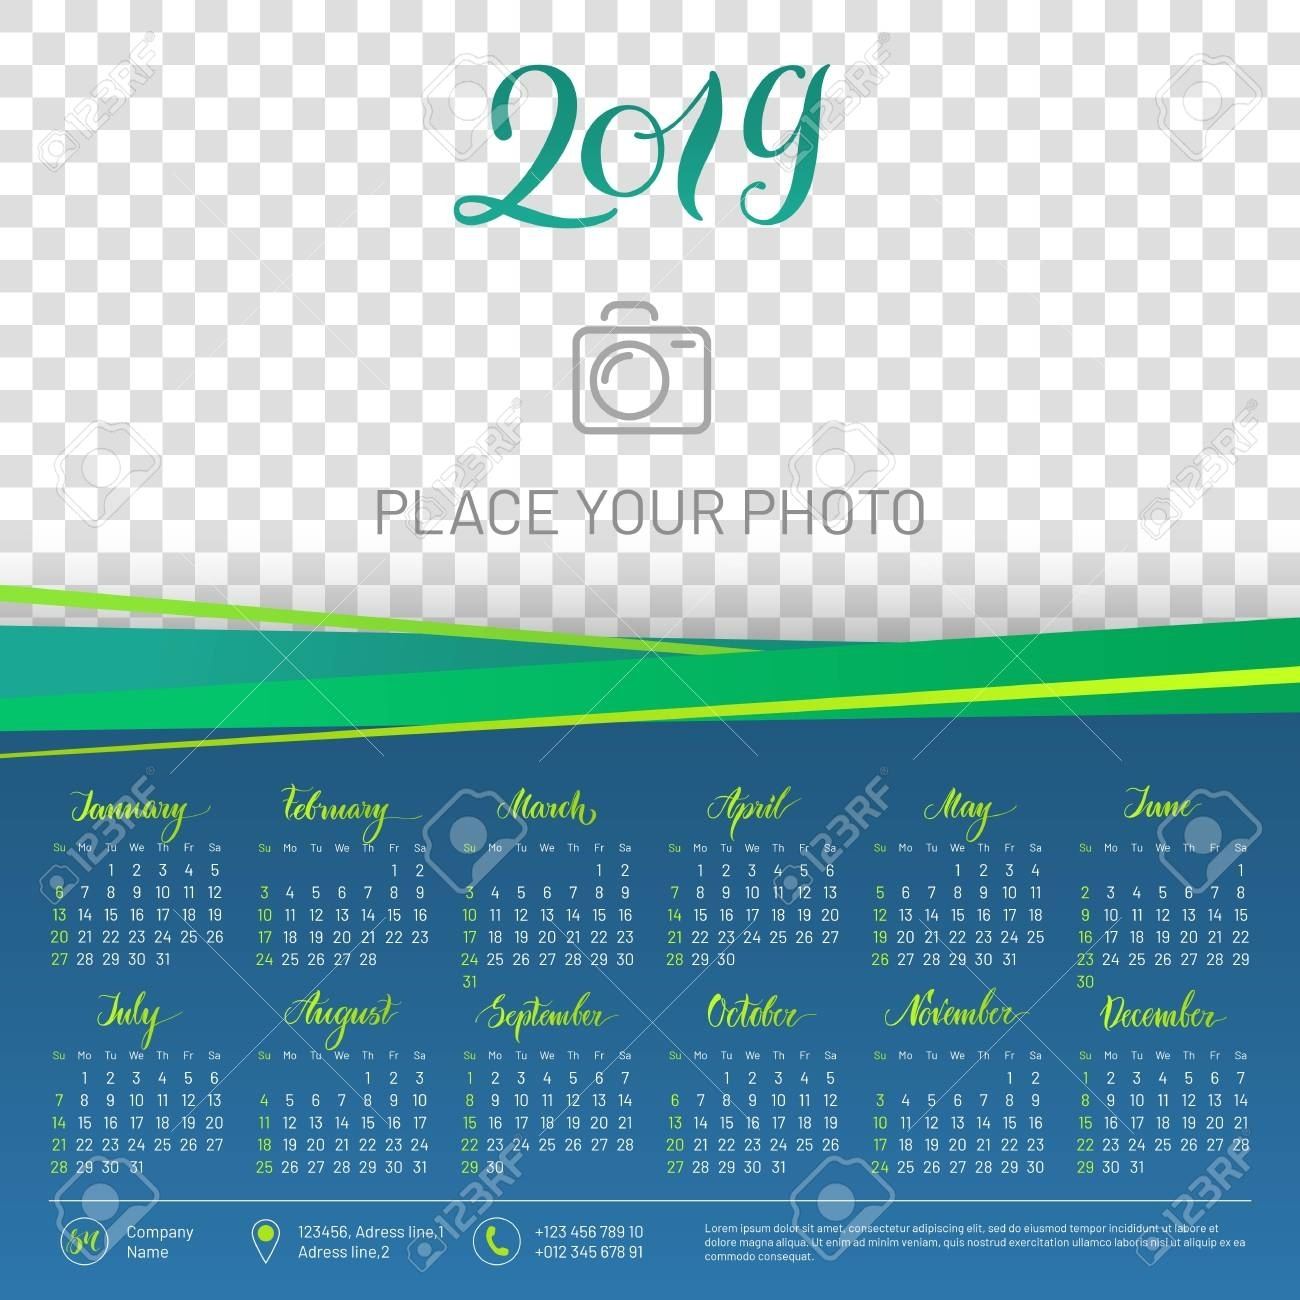 Wall Calendar 2019 Year, Copy Space Atop Transparent Background